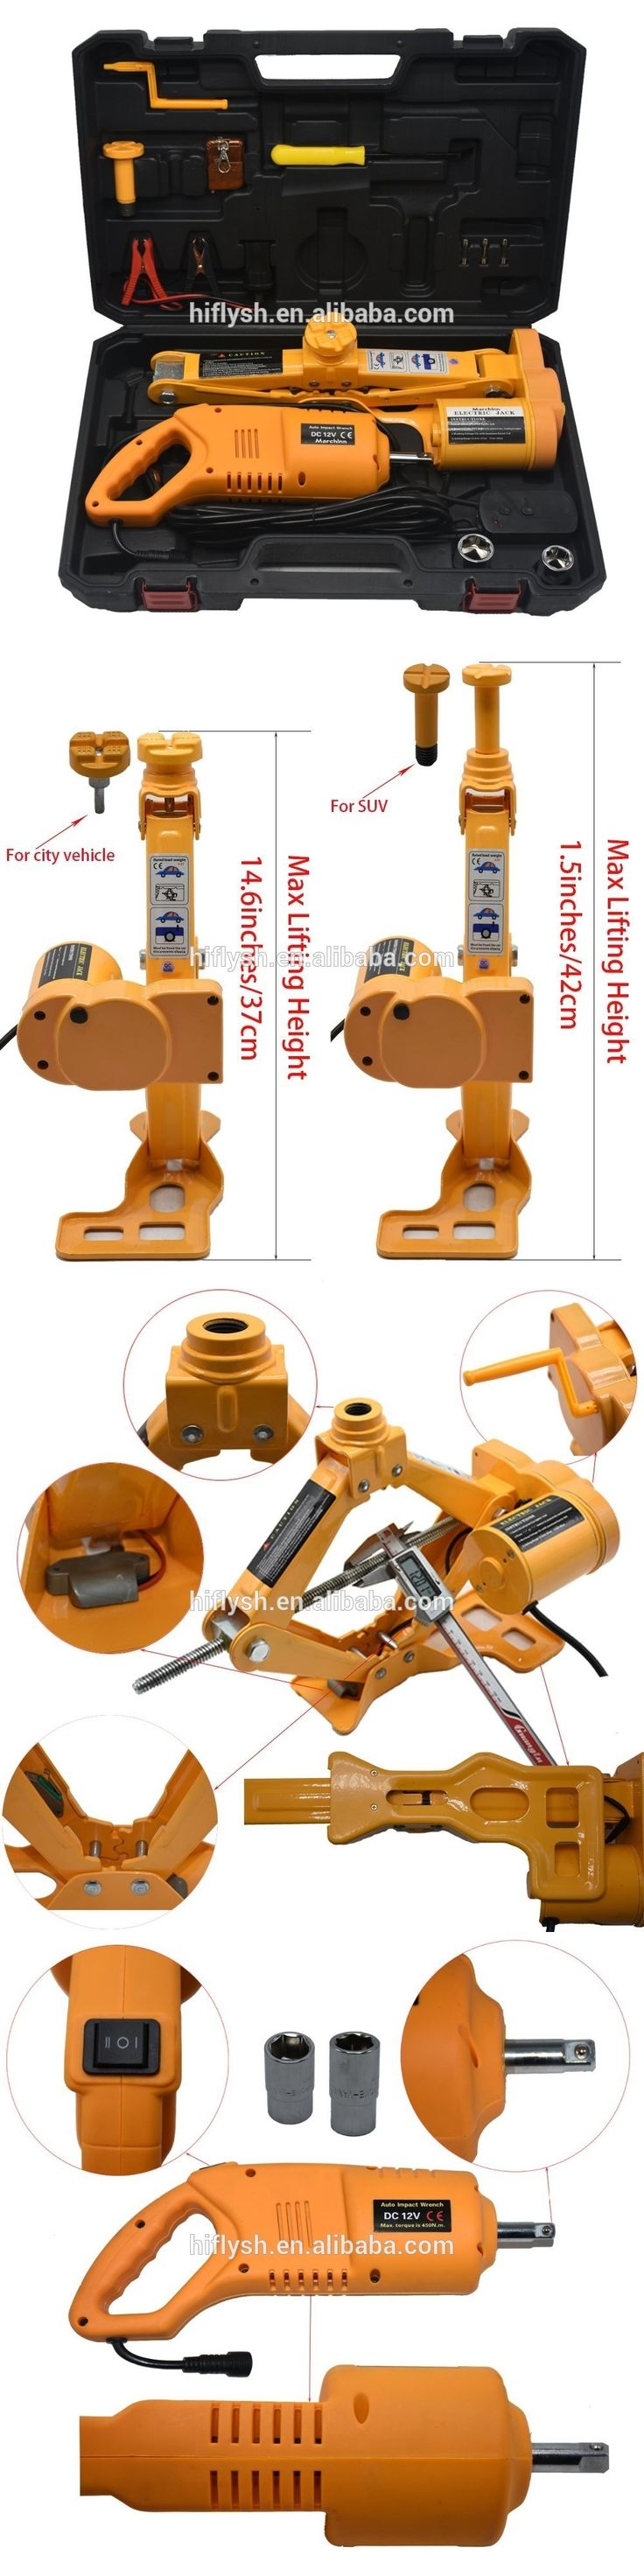 12V DC 2.5T(5500lb) Electric Car Jack - Double Saddles for Vehicle and SUV - and Electric Impact Wrench with Wireless Remote